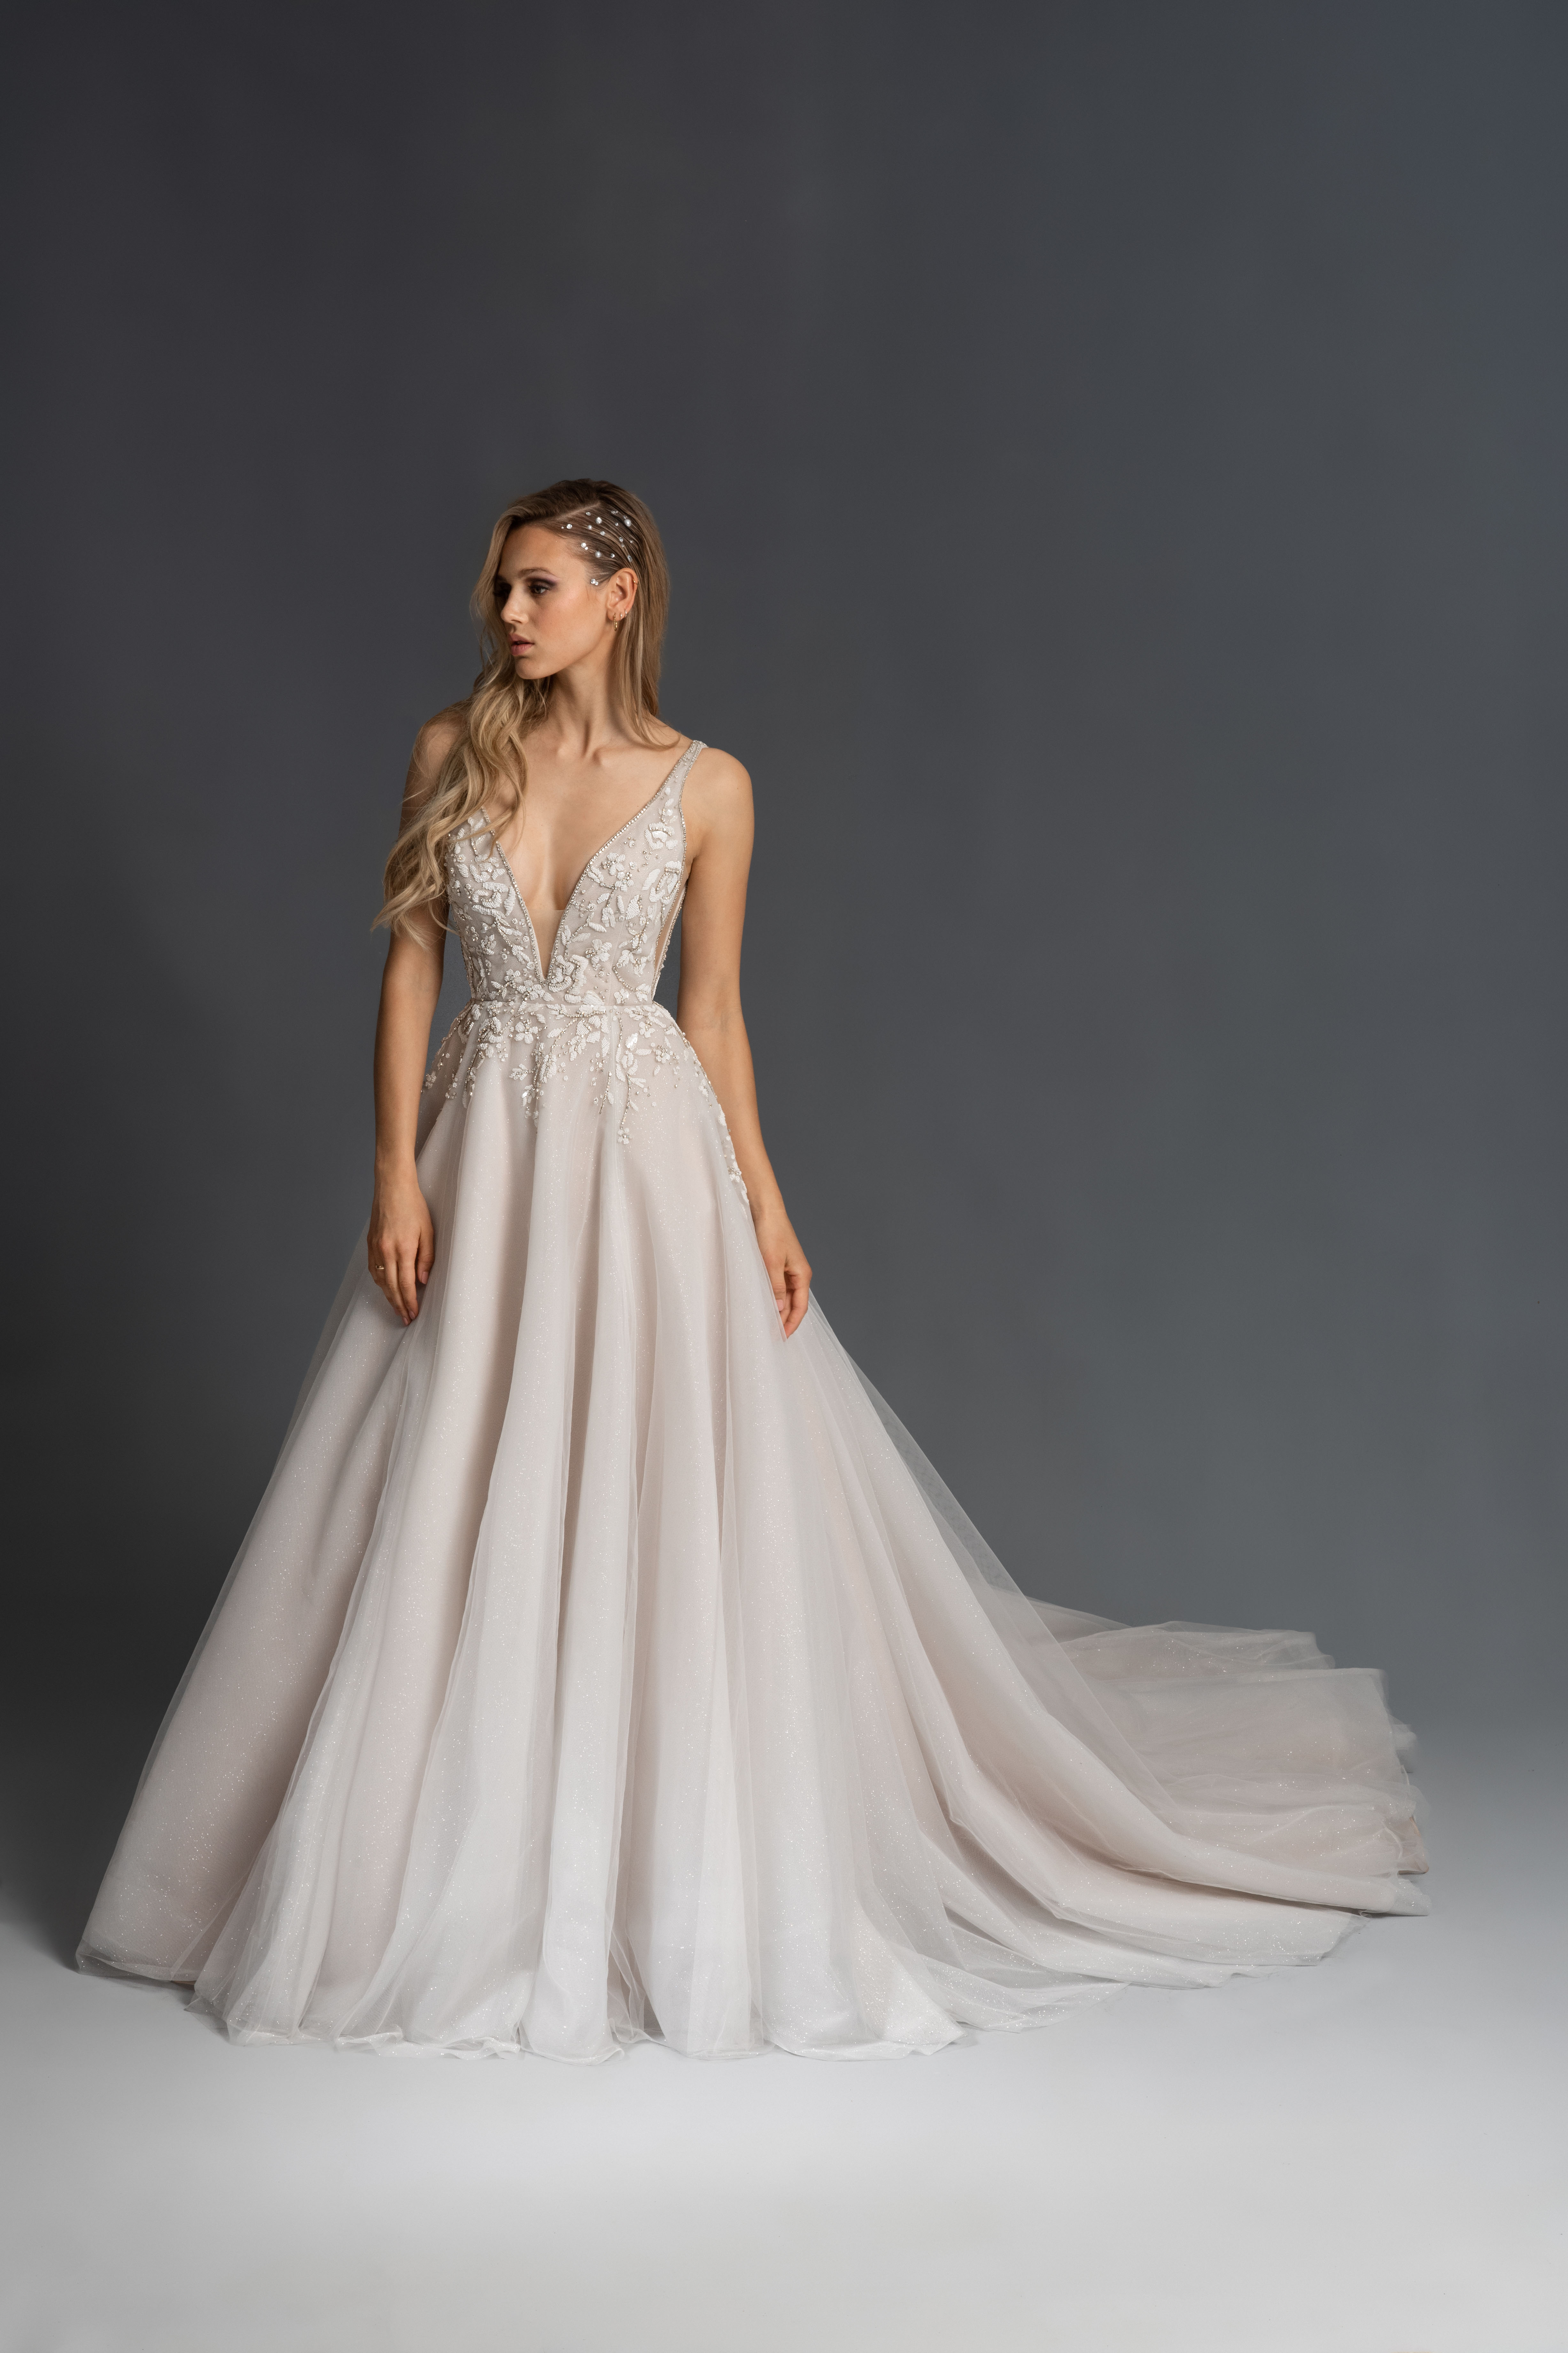 spaghetti strap plunging v-neck tulle skirt a-line wedding dress Hayley Paige Spring 2020